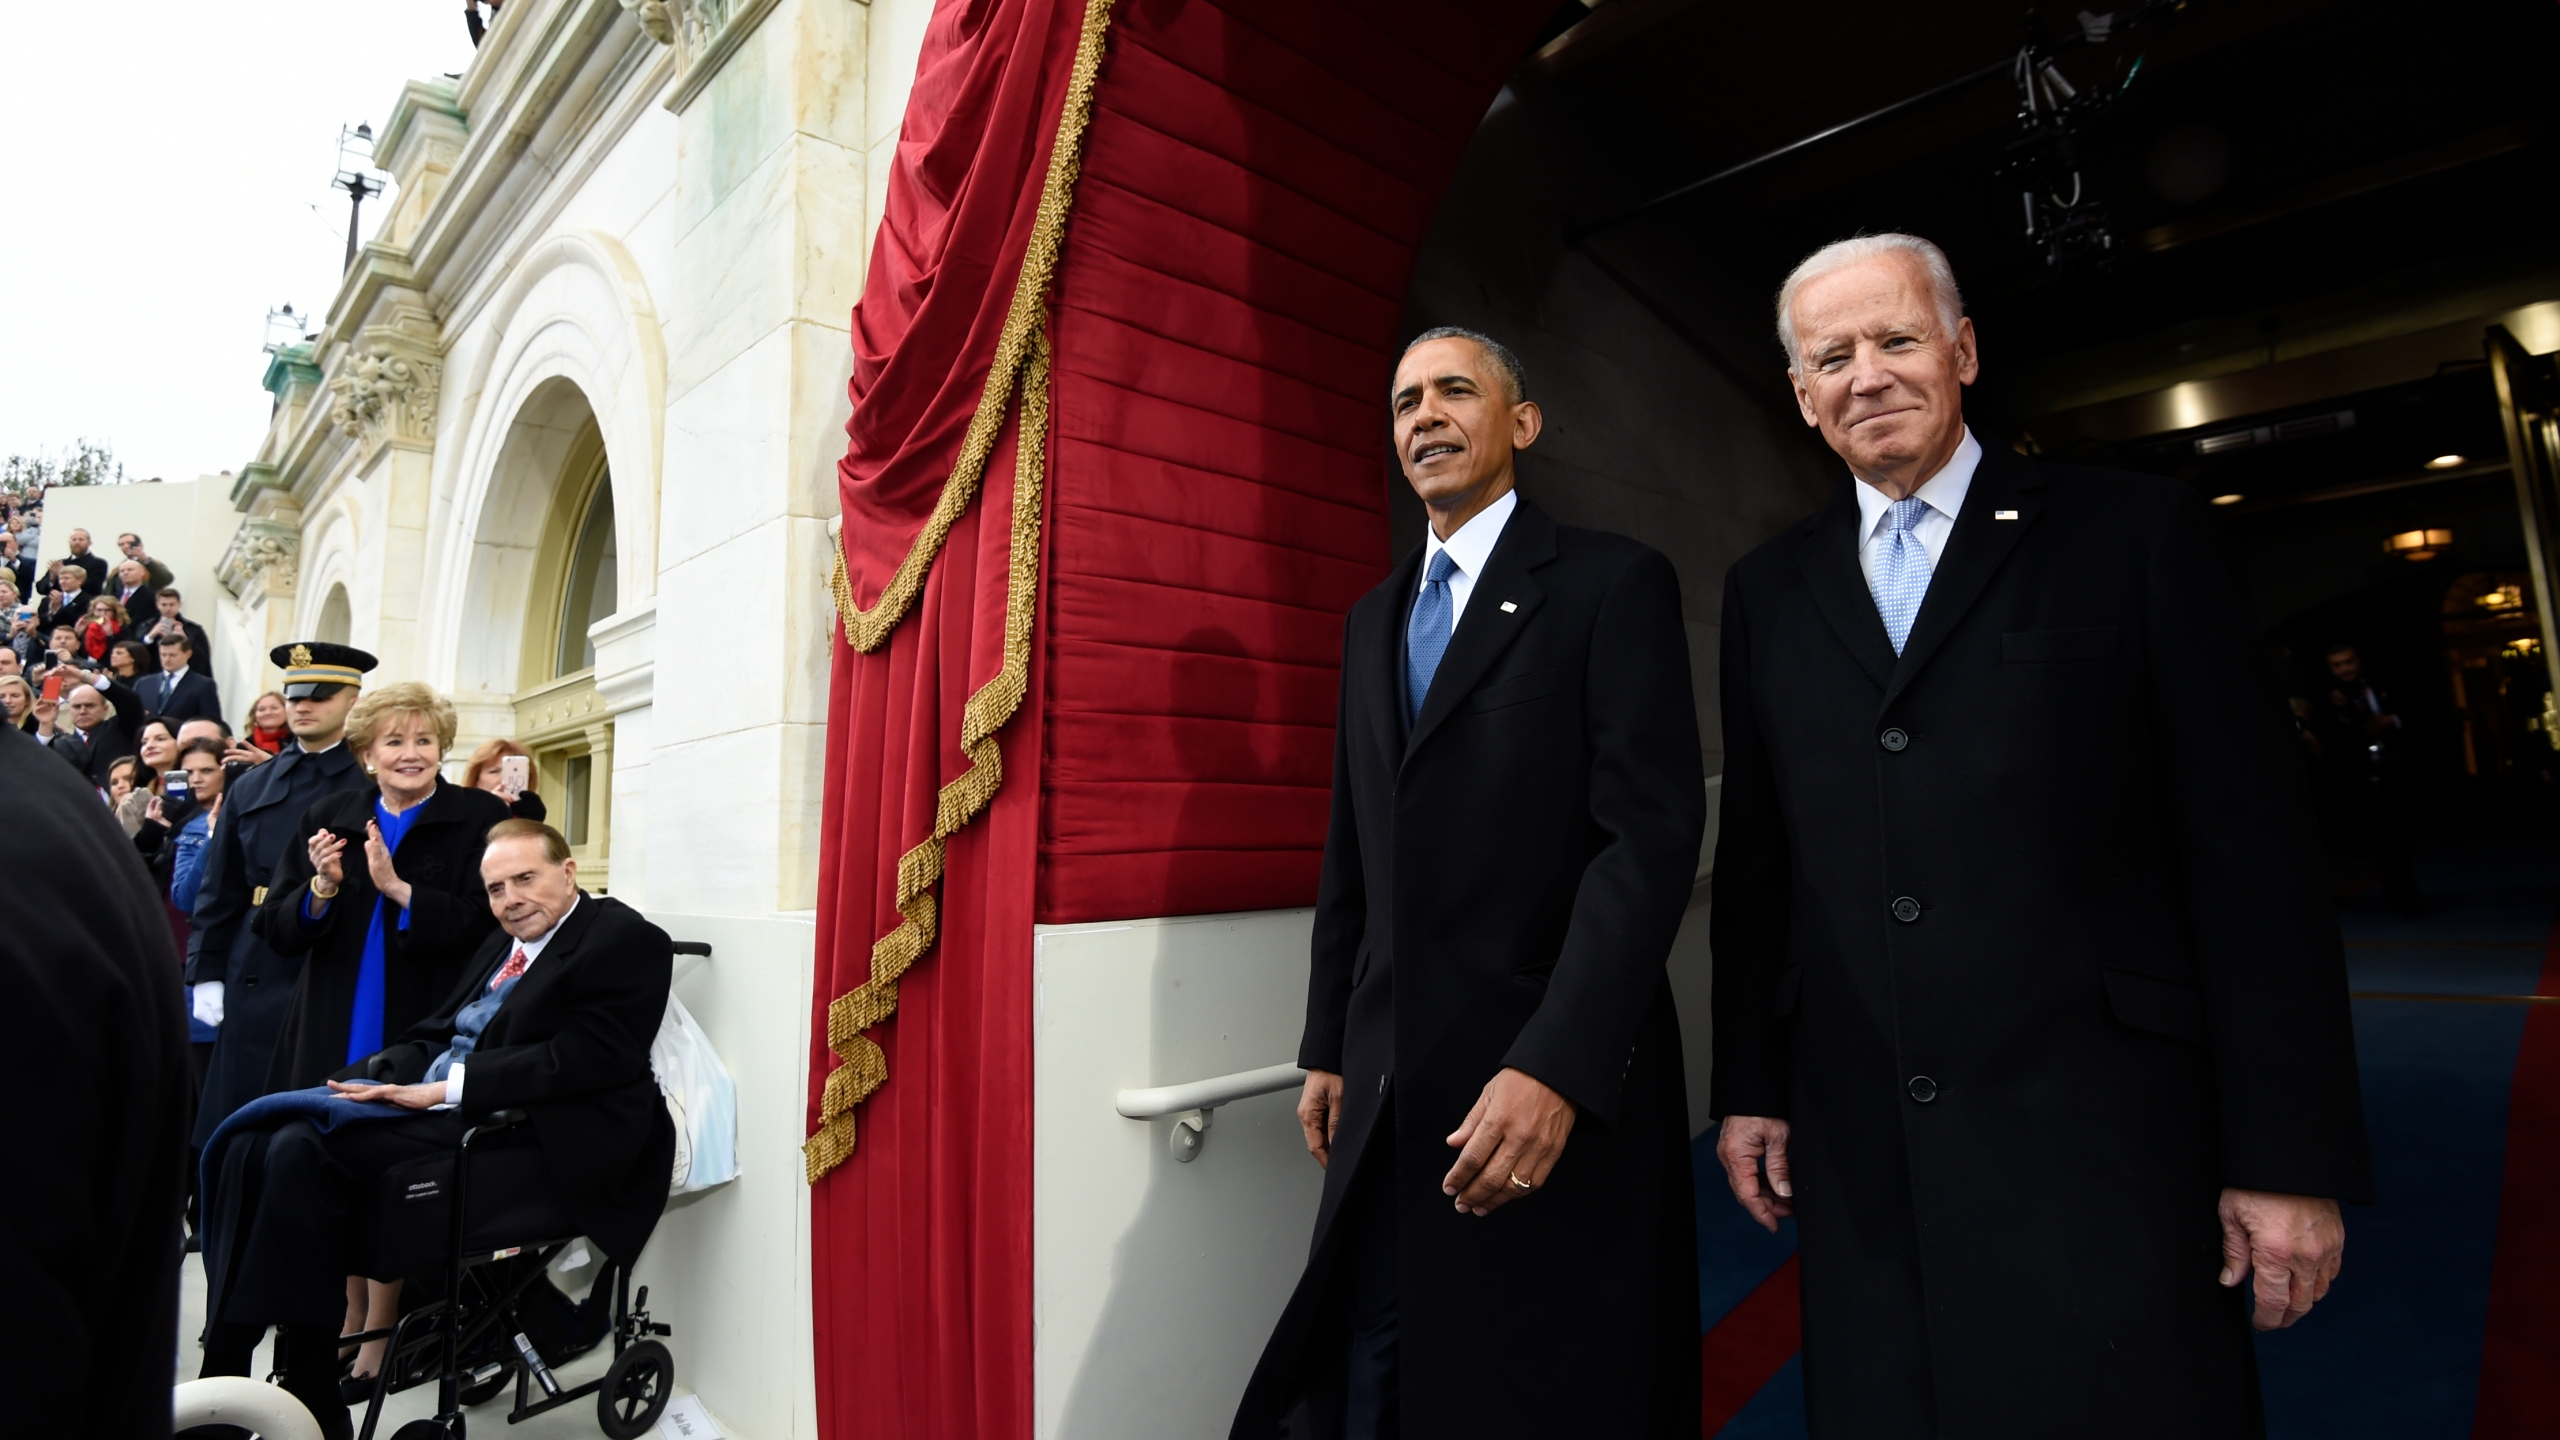 President Barack Obama and Vice President Joe Biden arrive for the Presidential Inauguration of Donald Trump at the US Capitol on January 20, 2017, in Washington, D.C. (Saul Loeb - Pool/Getty Images)